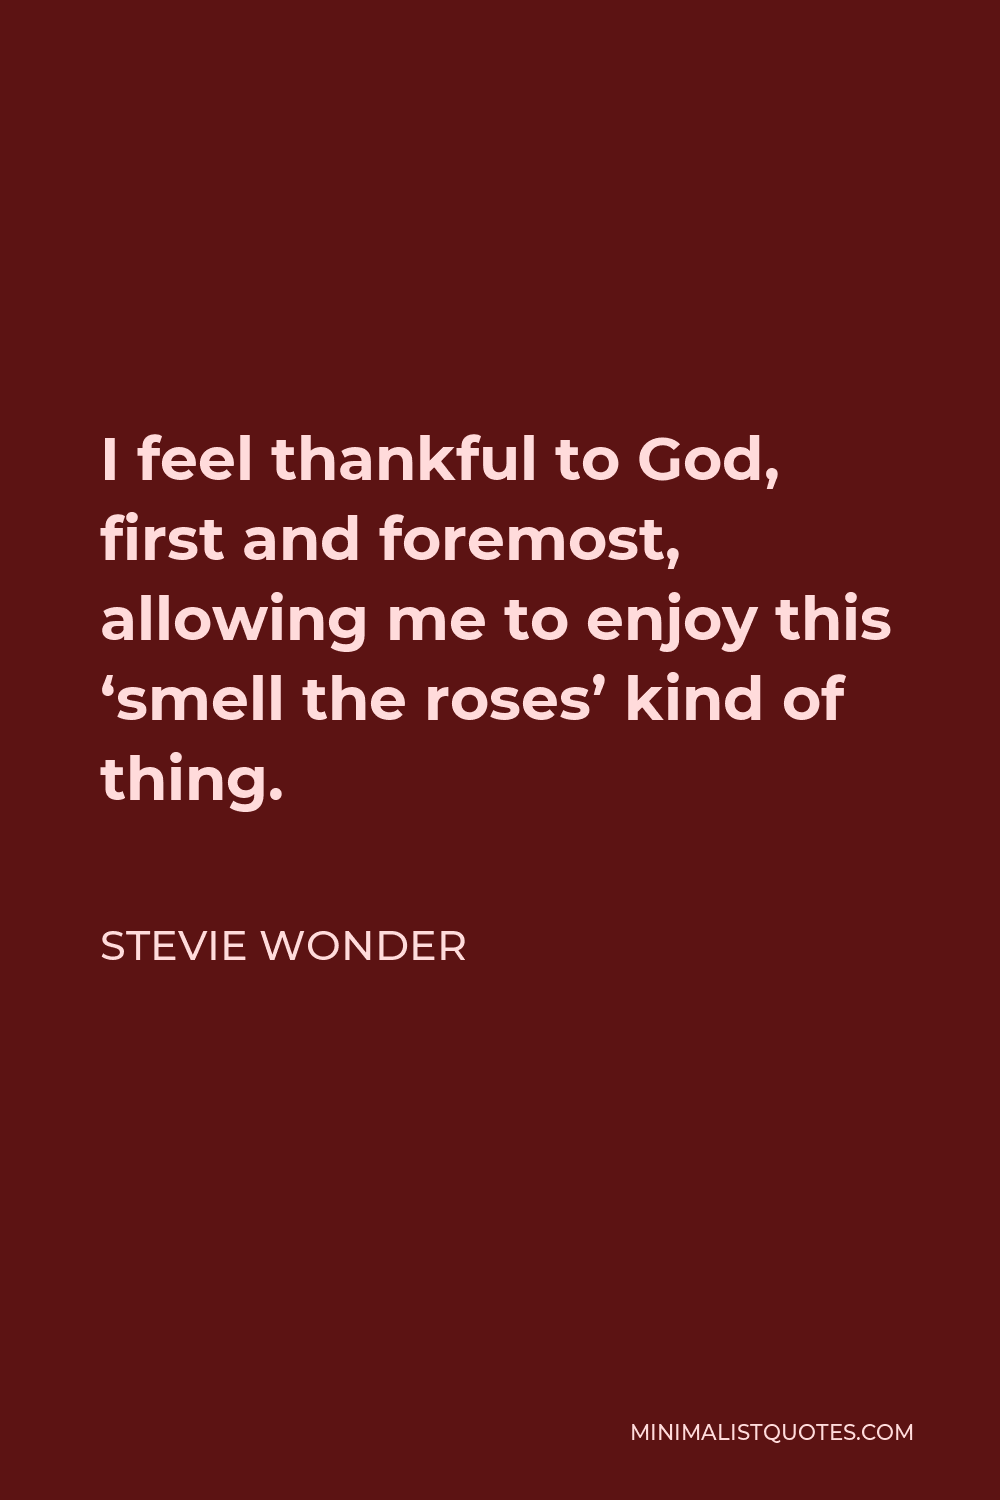 Stevie Wonder Quote - I feel thankful to God, first and foremost, allowing me to enjoy this 'smell the roses' kind of thing.